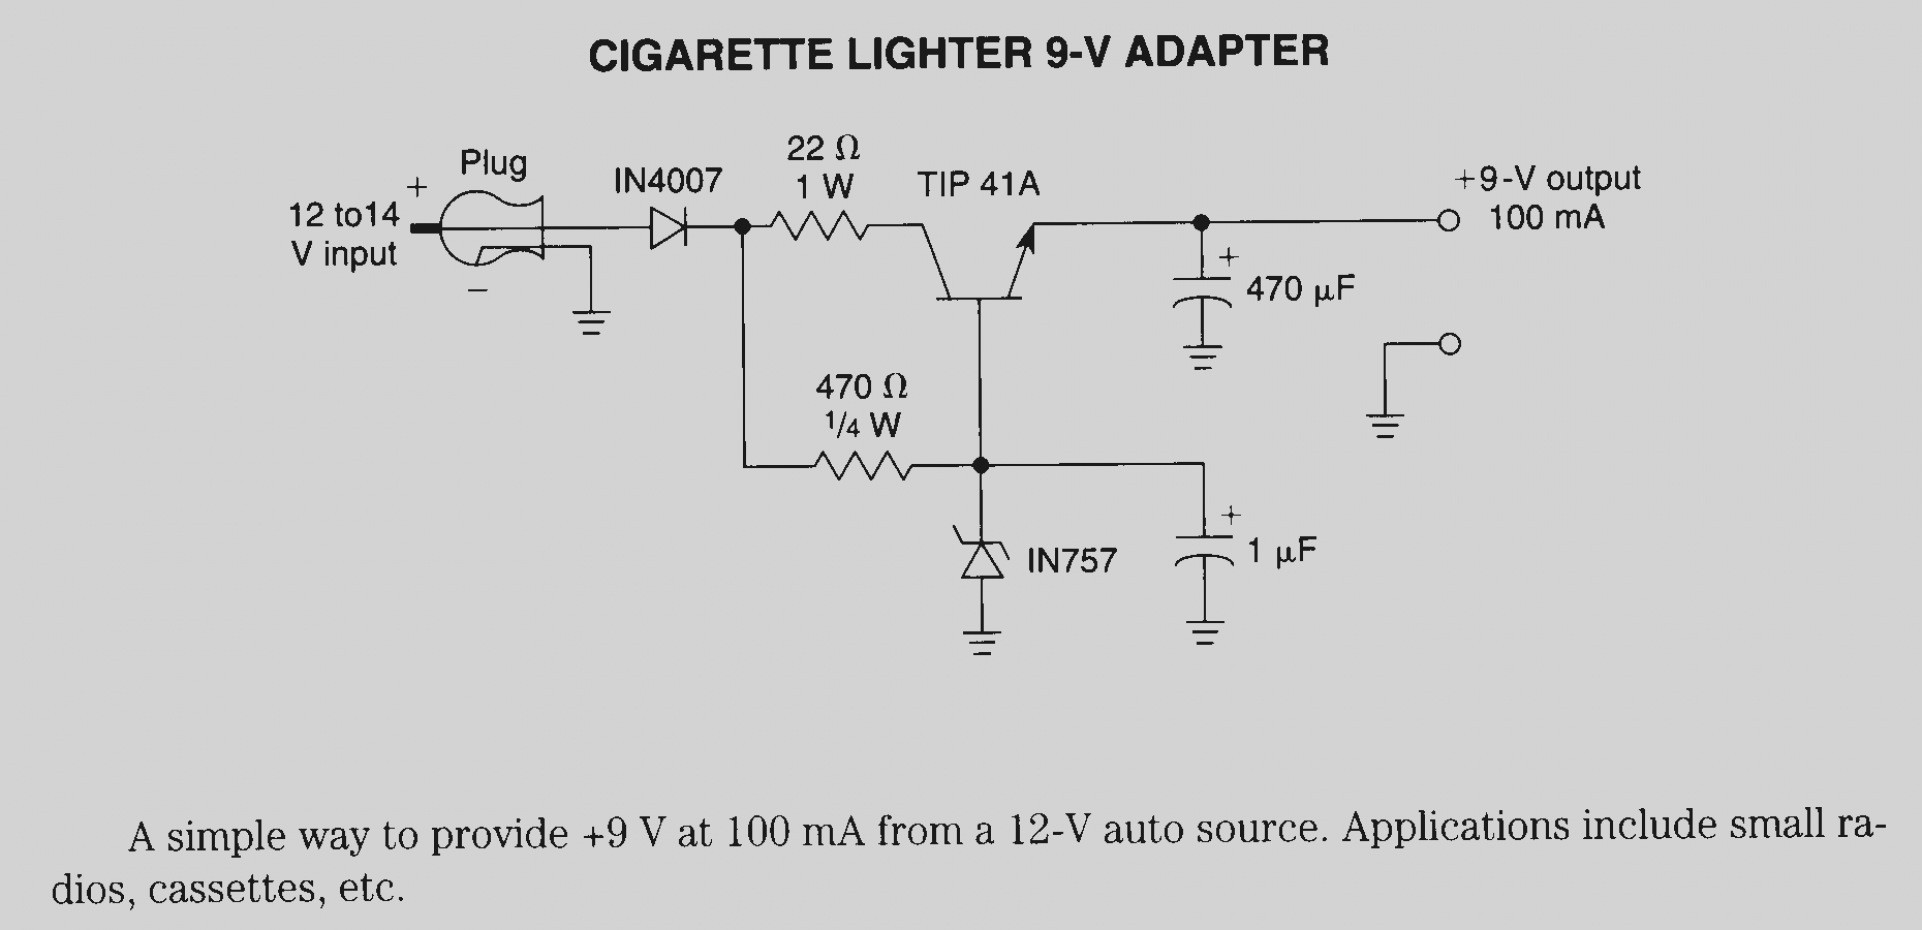 12v Cigarette Lighter Wiring Diagram Best Image 2018 Car Chart Gallery